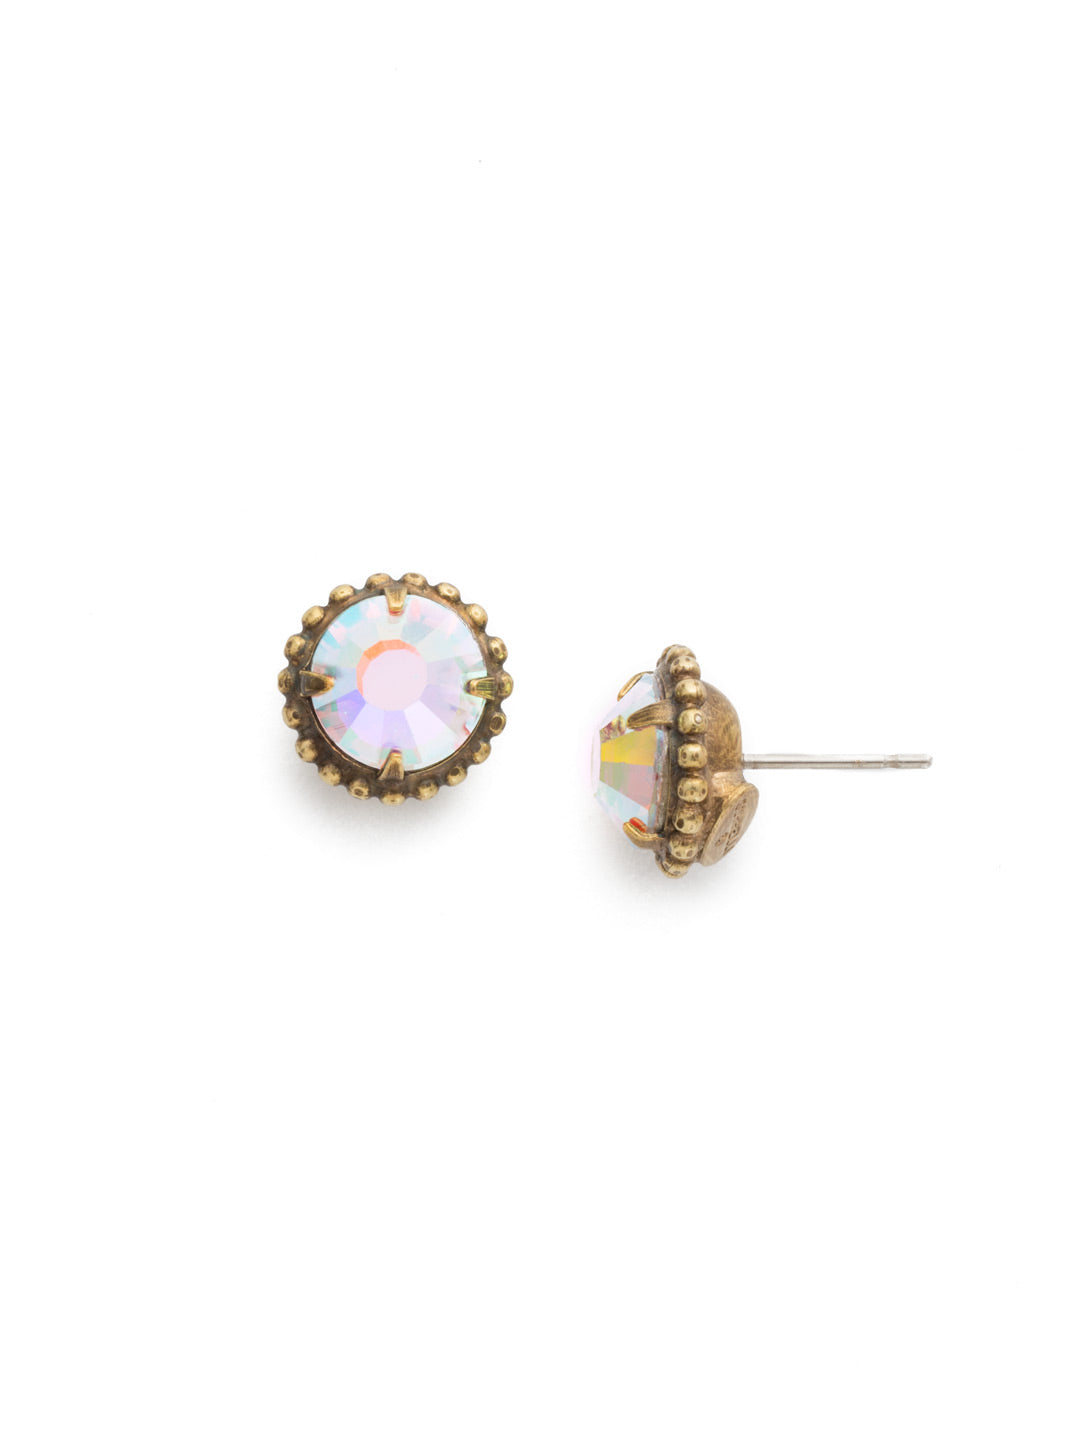 Simplicity Stud Earrings - EBY38AGCAB